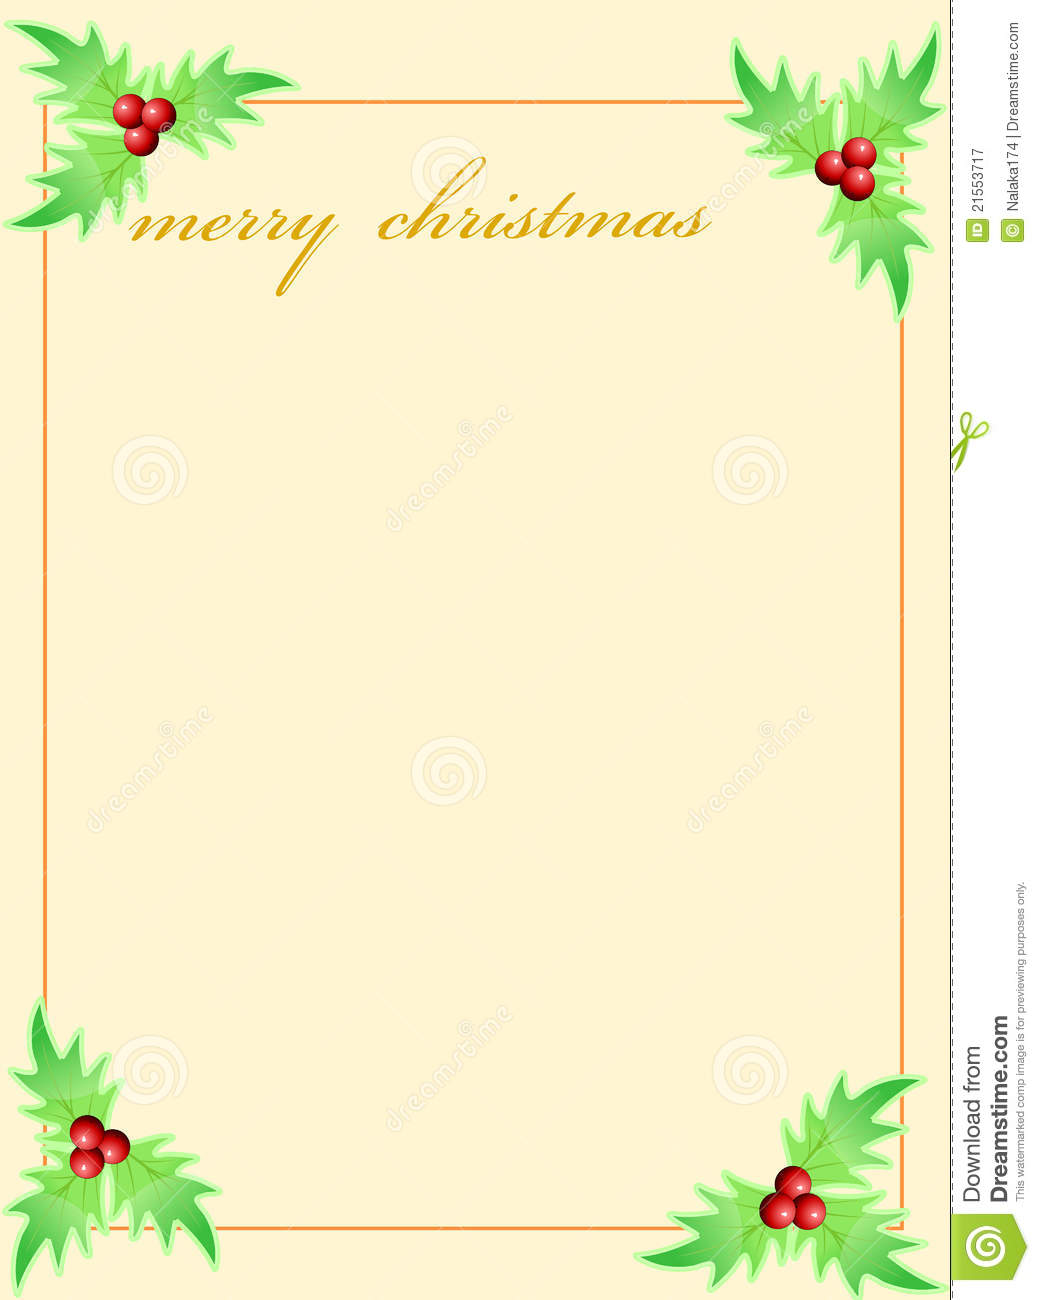 Free blank greeting card templates m4hsunfo